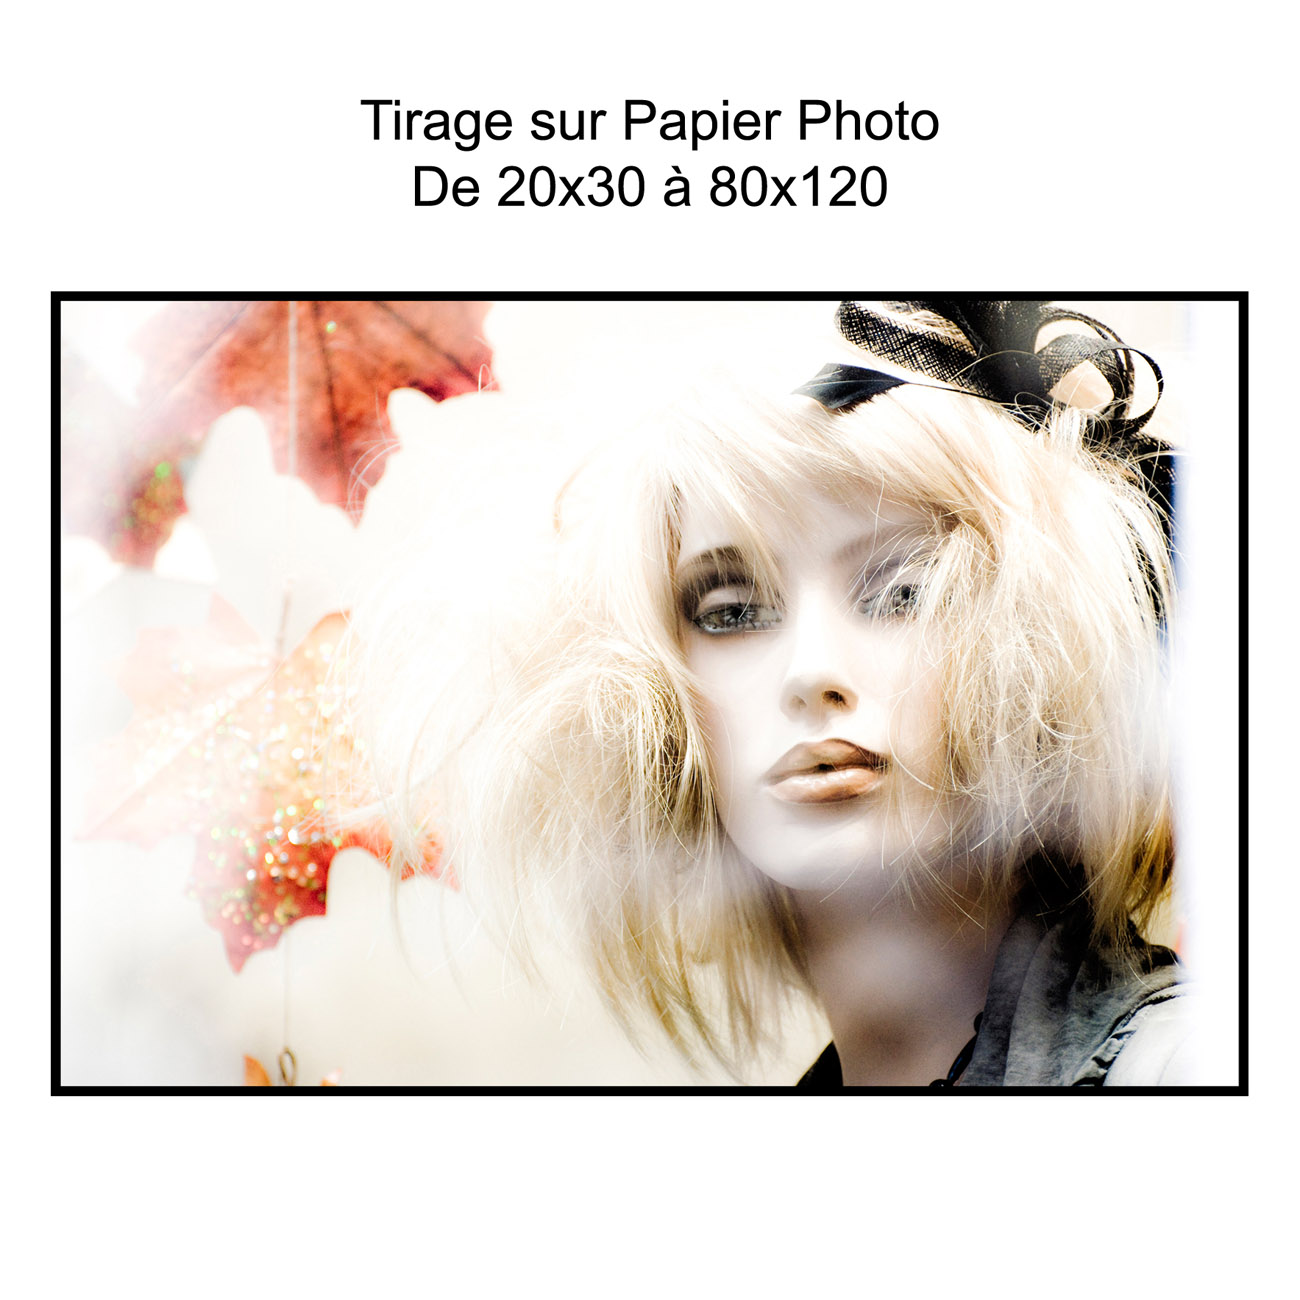 Tirage-sur-Papier-photo